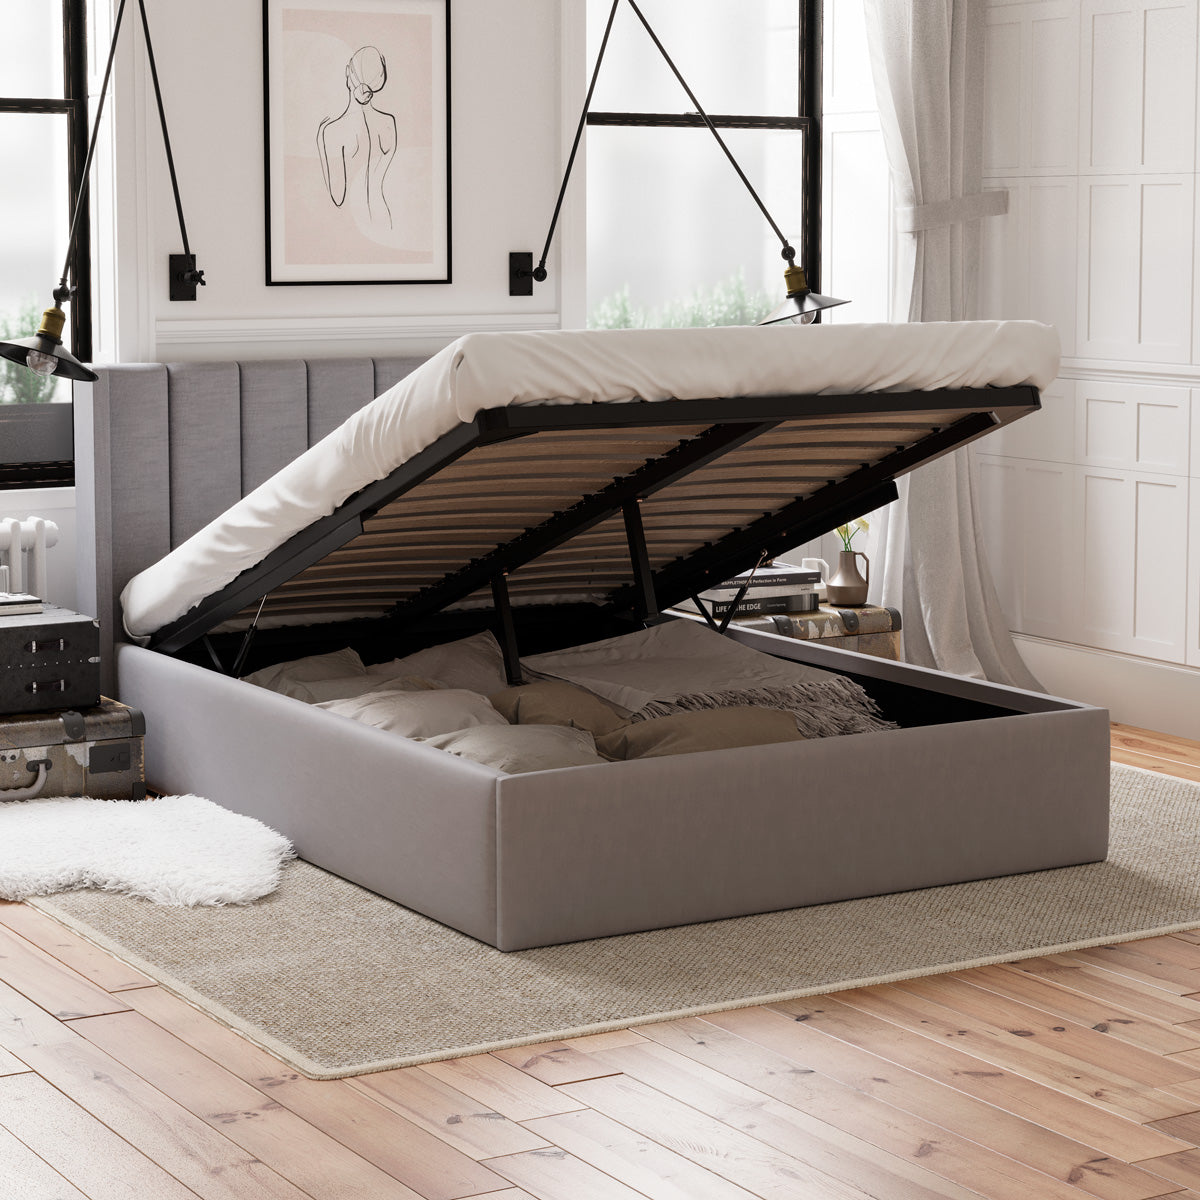 Emilie Gas Lift Storage Wing Bed Frame (Grey Fabric)